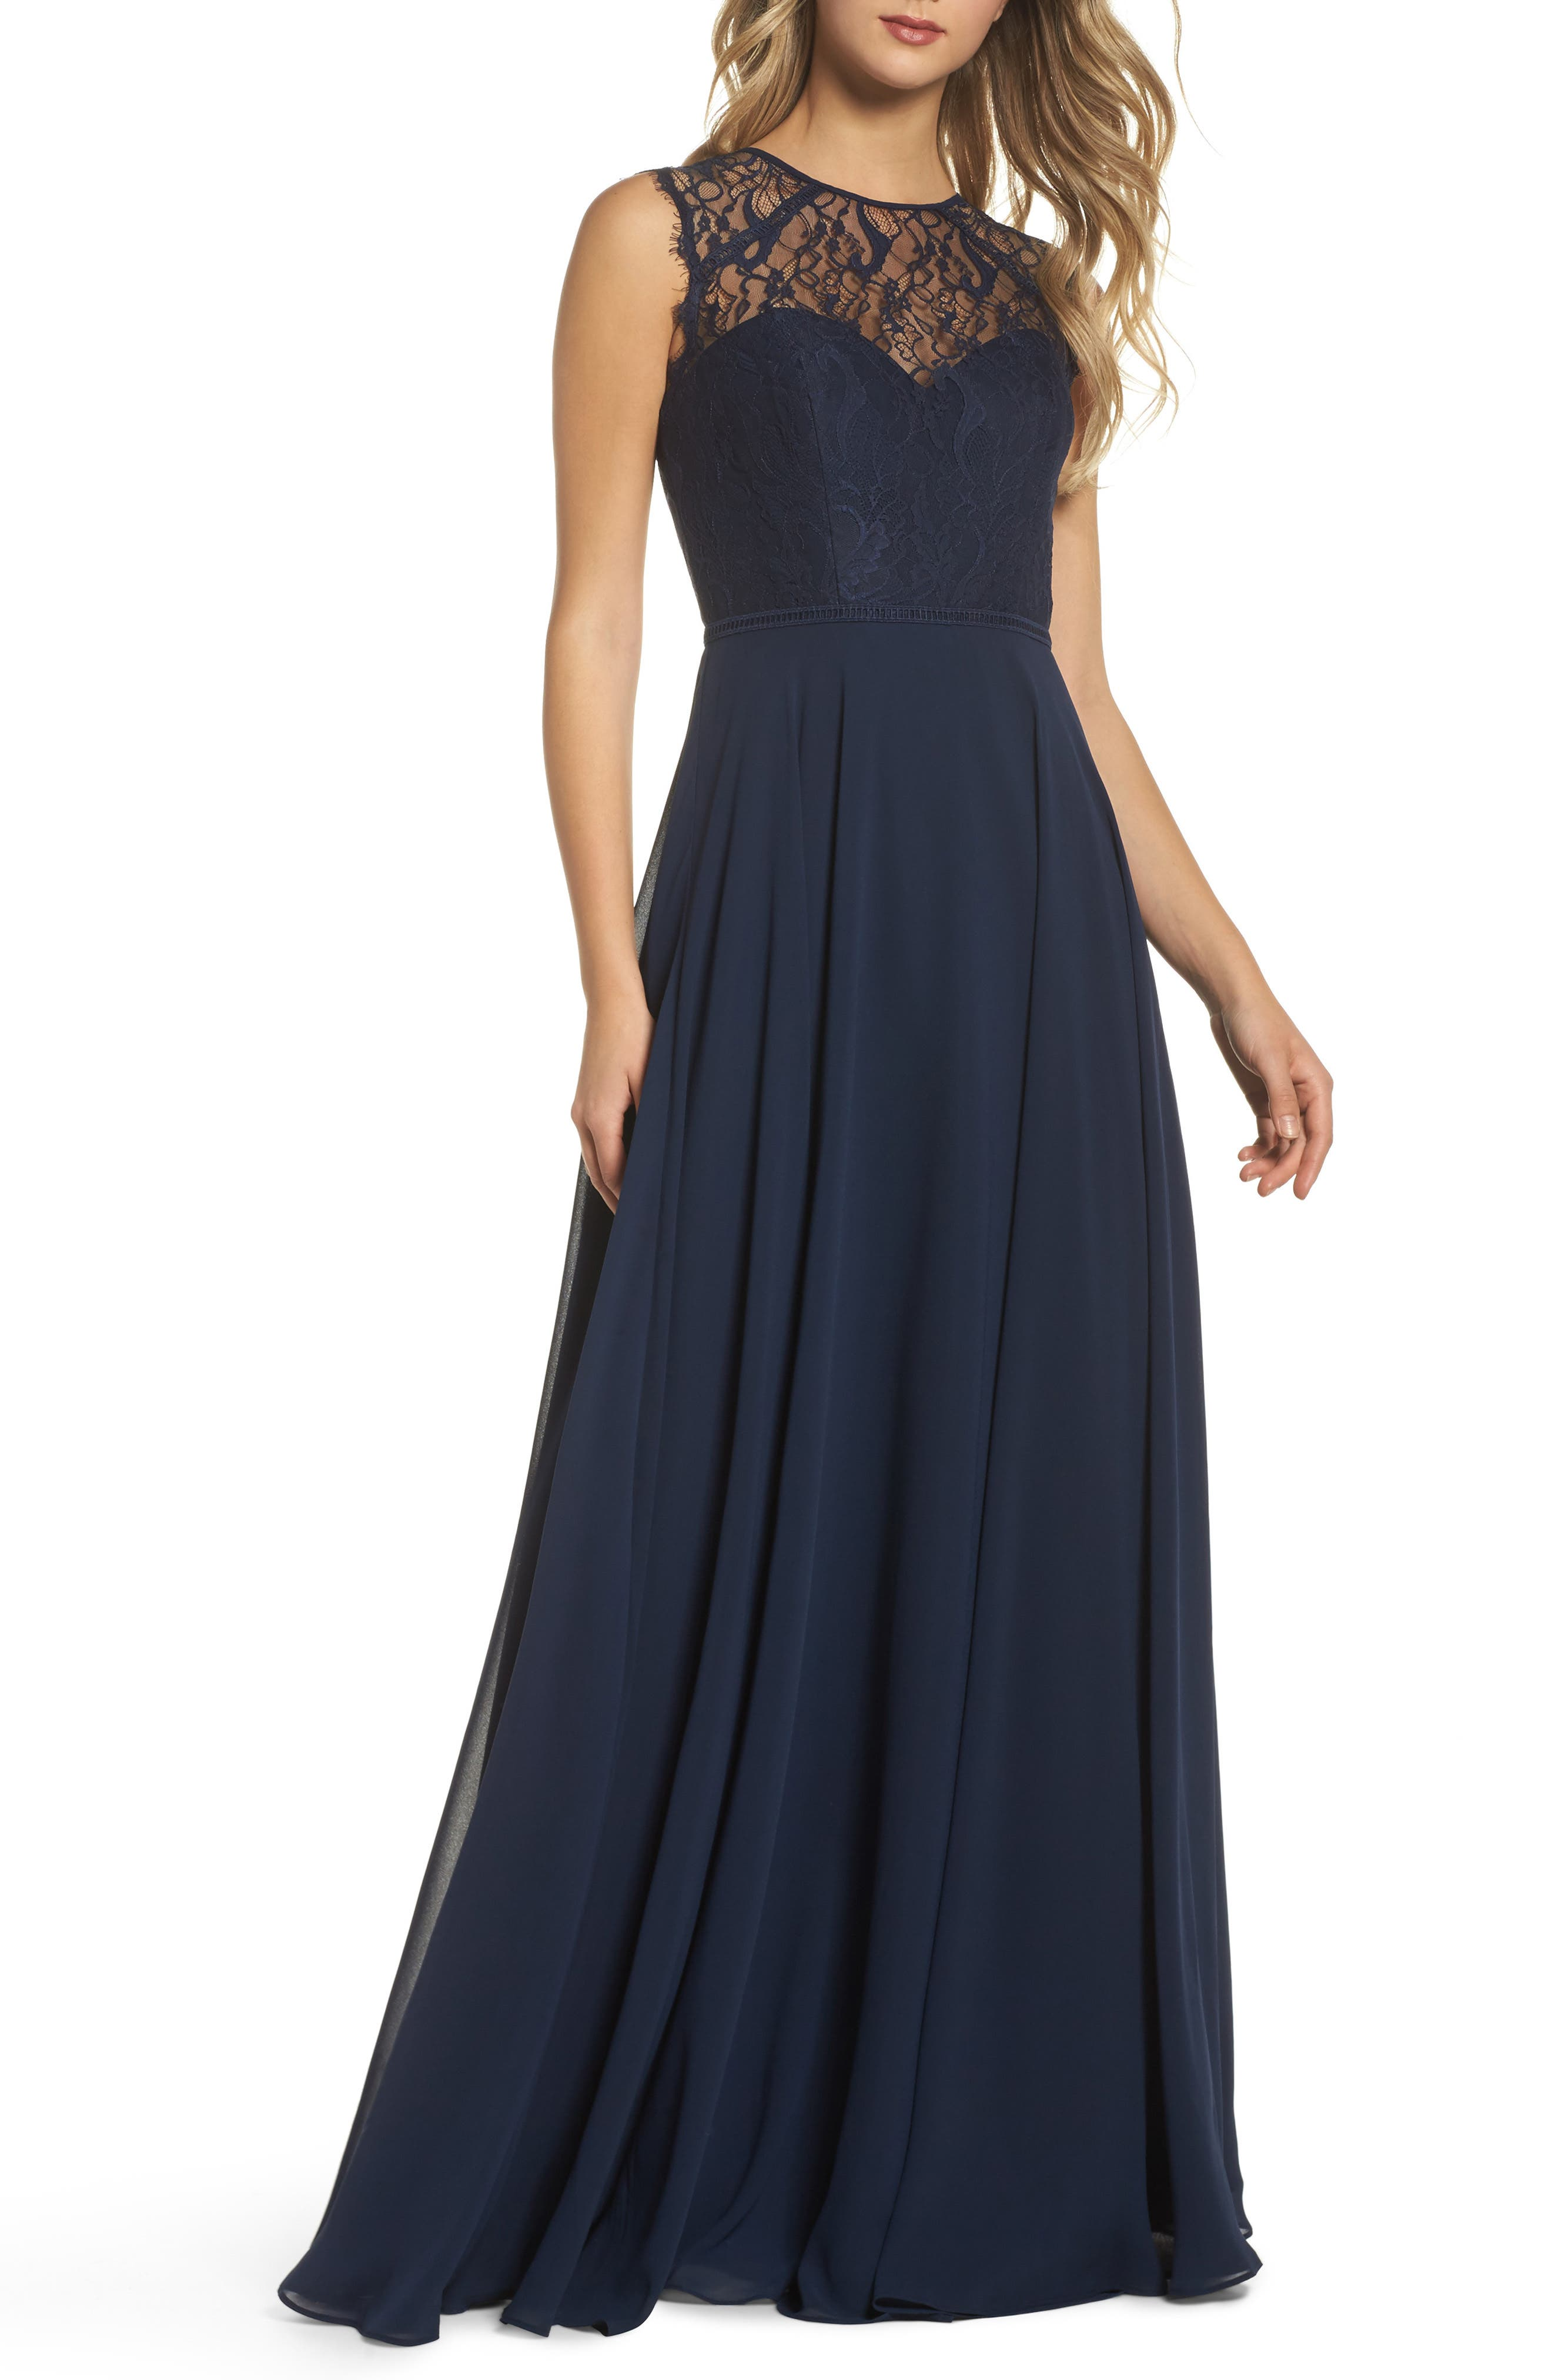 Alternate Image 1 Selected - Hayley Paige Occasions Lace & Chiffon Gown